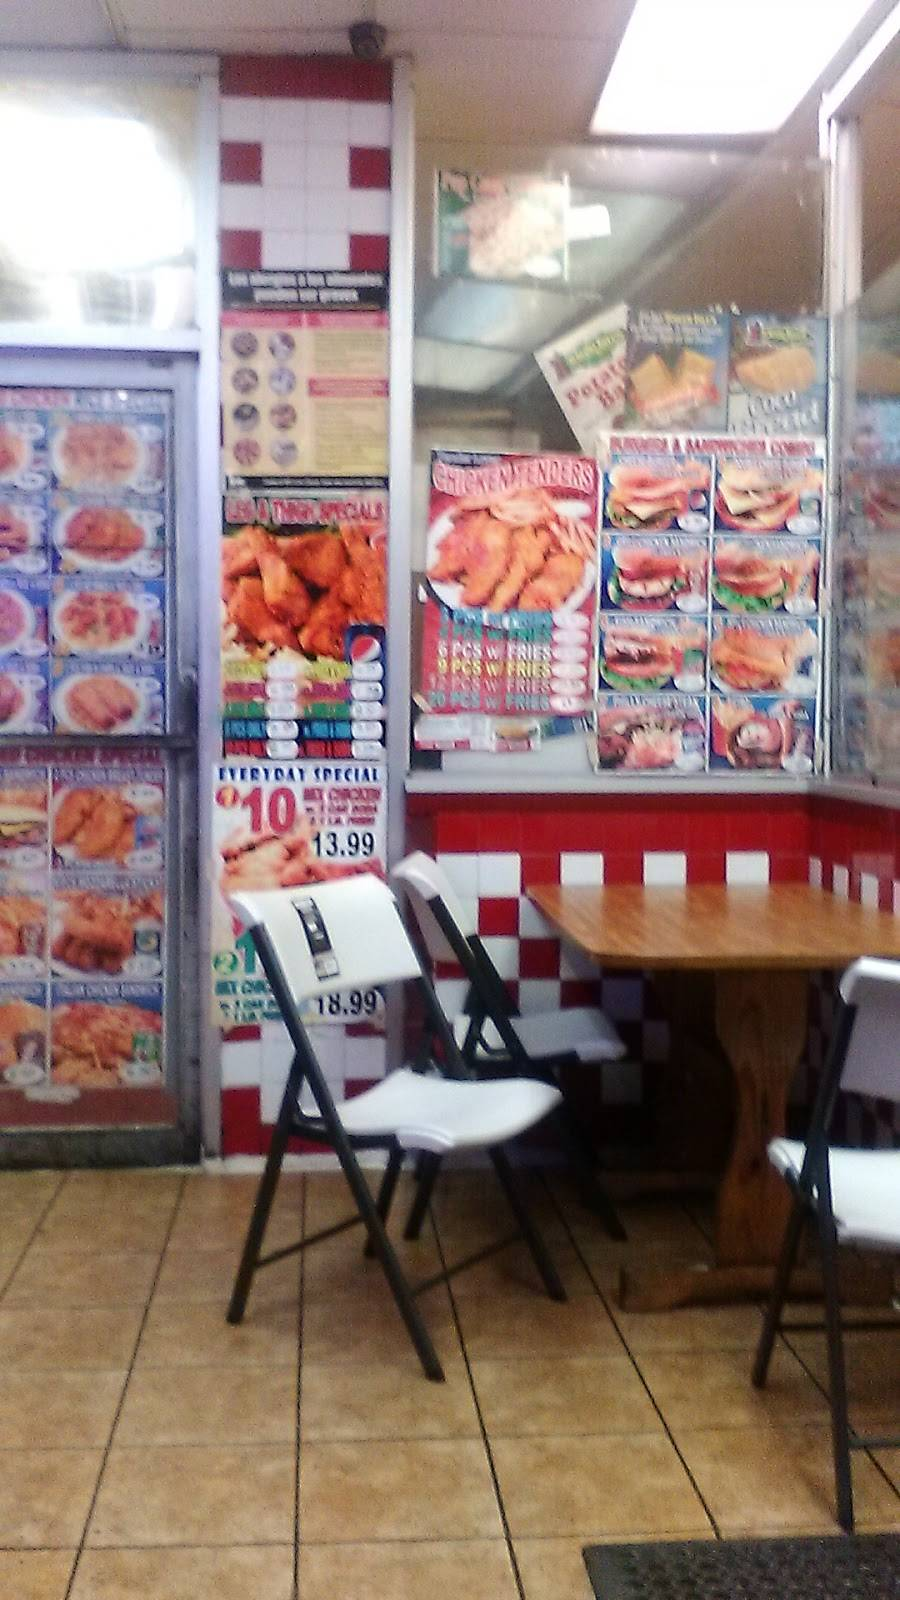 Halal Hot Fried Chicken | restaurant | 1401 White Plains Rd, Bronx, NY 10462, USA | 7188292834 OR +1 718-829-2834